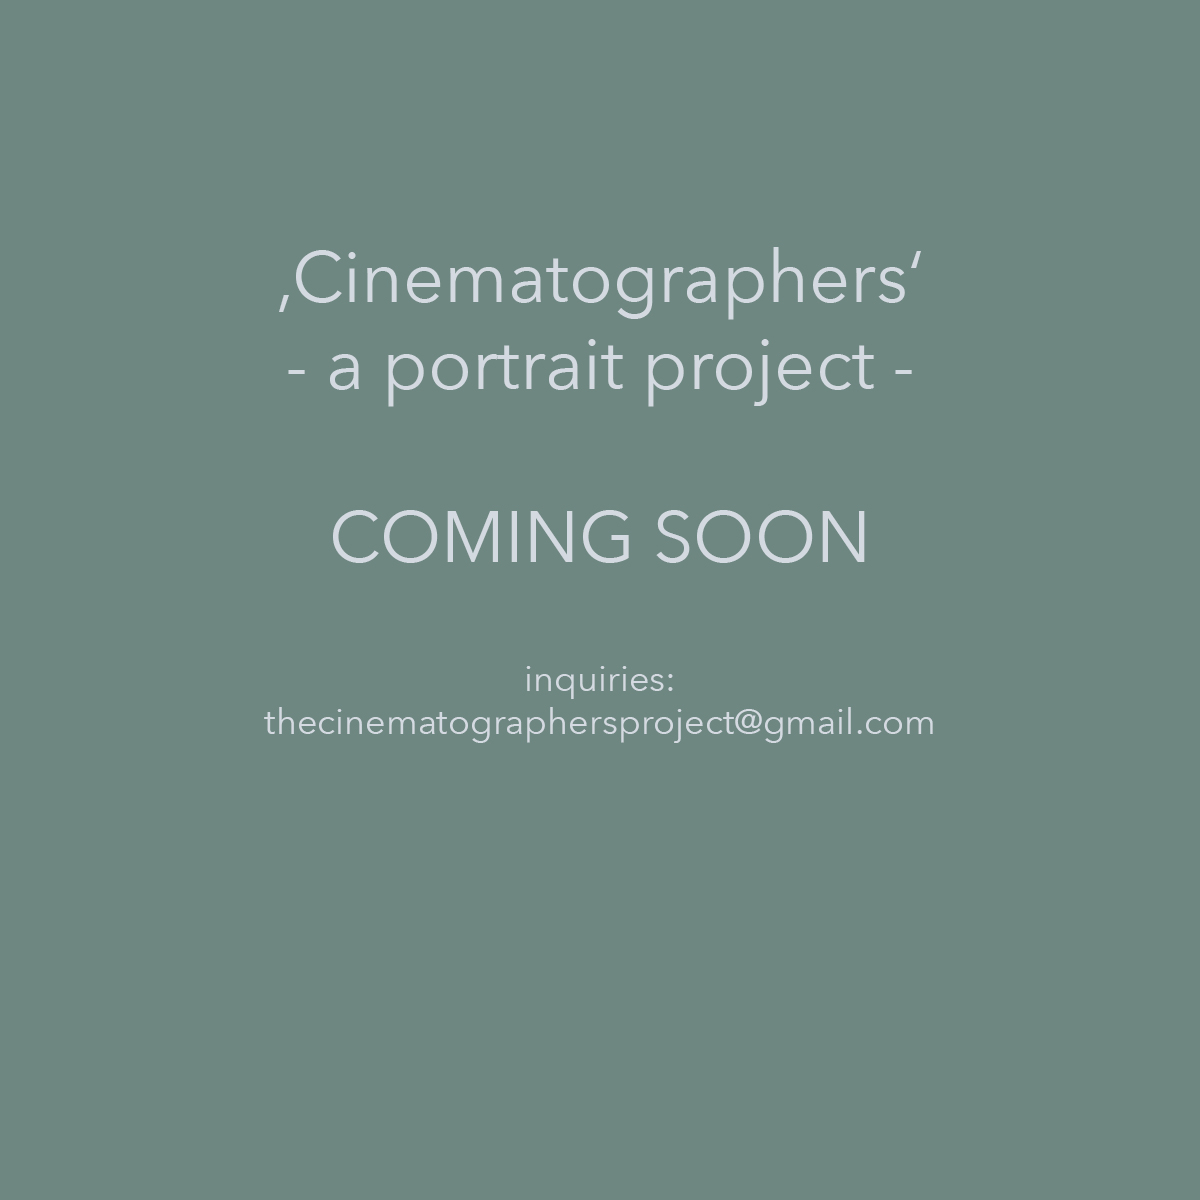 CinematographersComingSoon.jpg